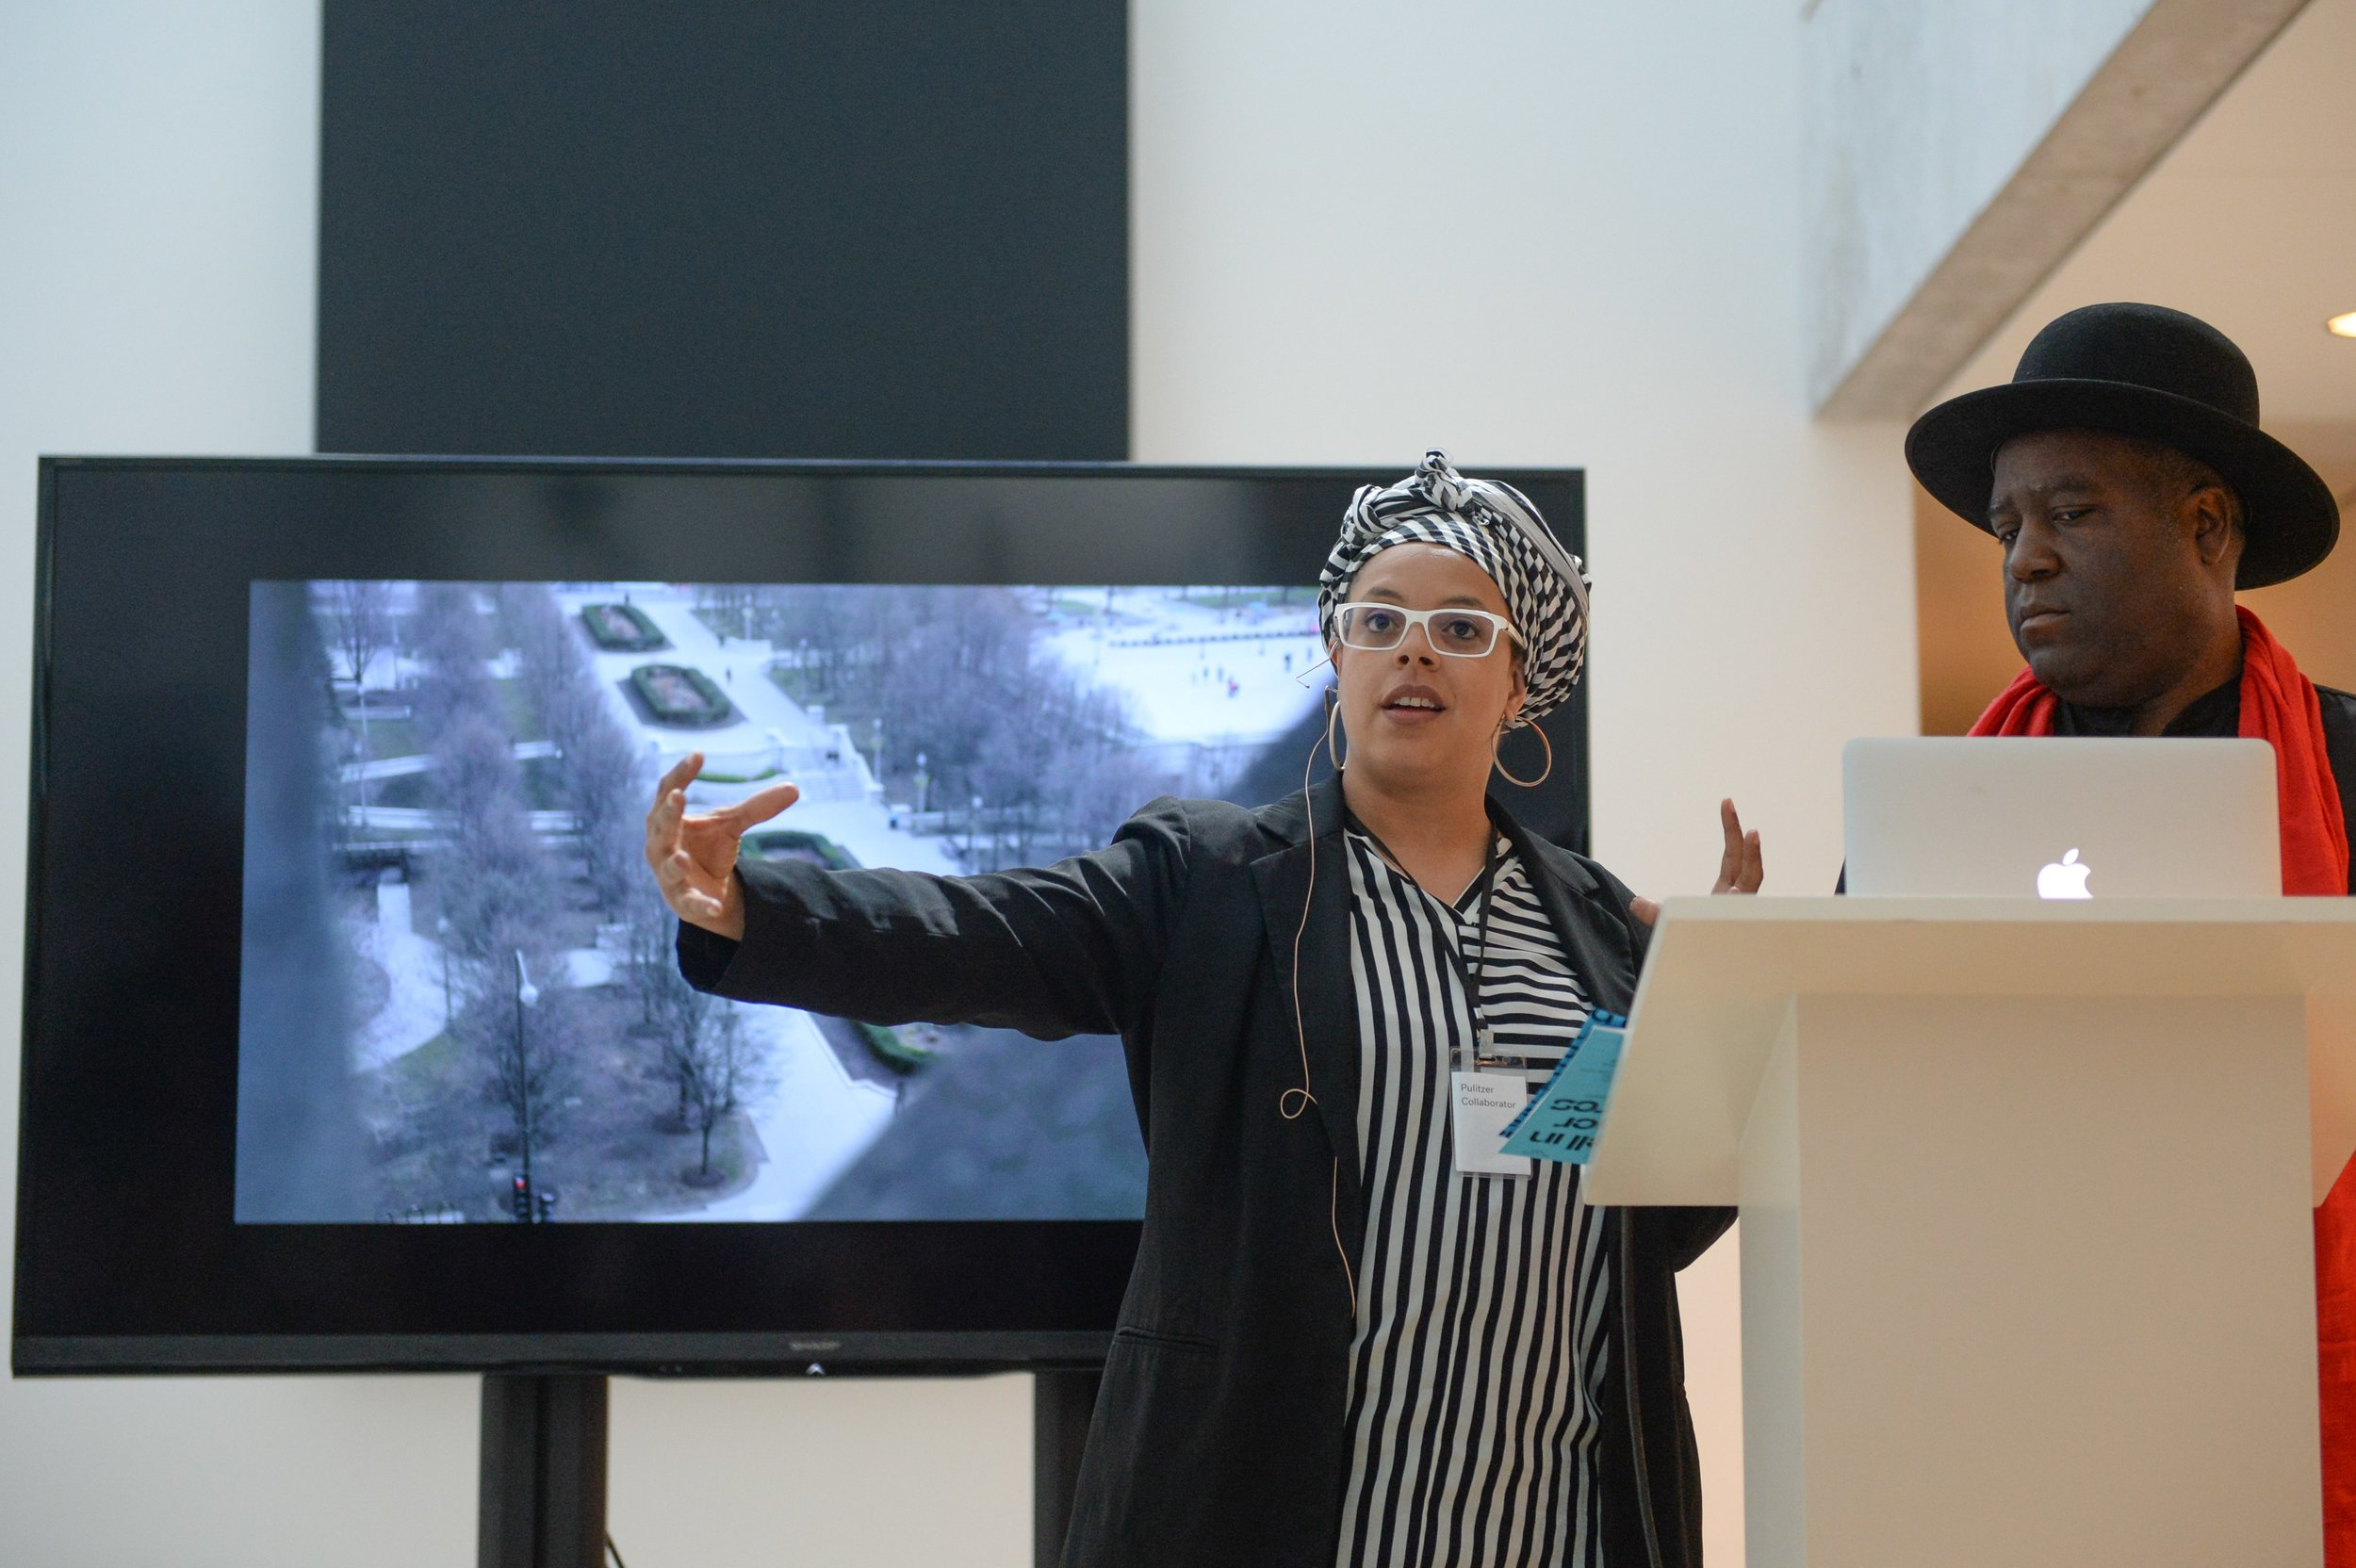 Mendi + Keith Obadike speaking in front of a screen at Dwell In Other Futures: Art / Urbanism / Midwest. Pulitzer Arts Foundation, St. Louis. April 28, 2018. Photo by Michael Thomas.